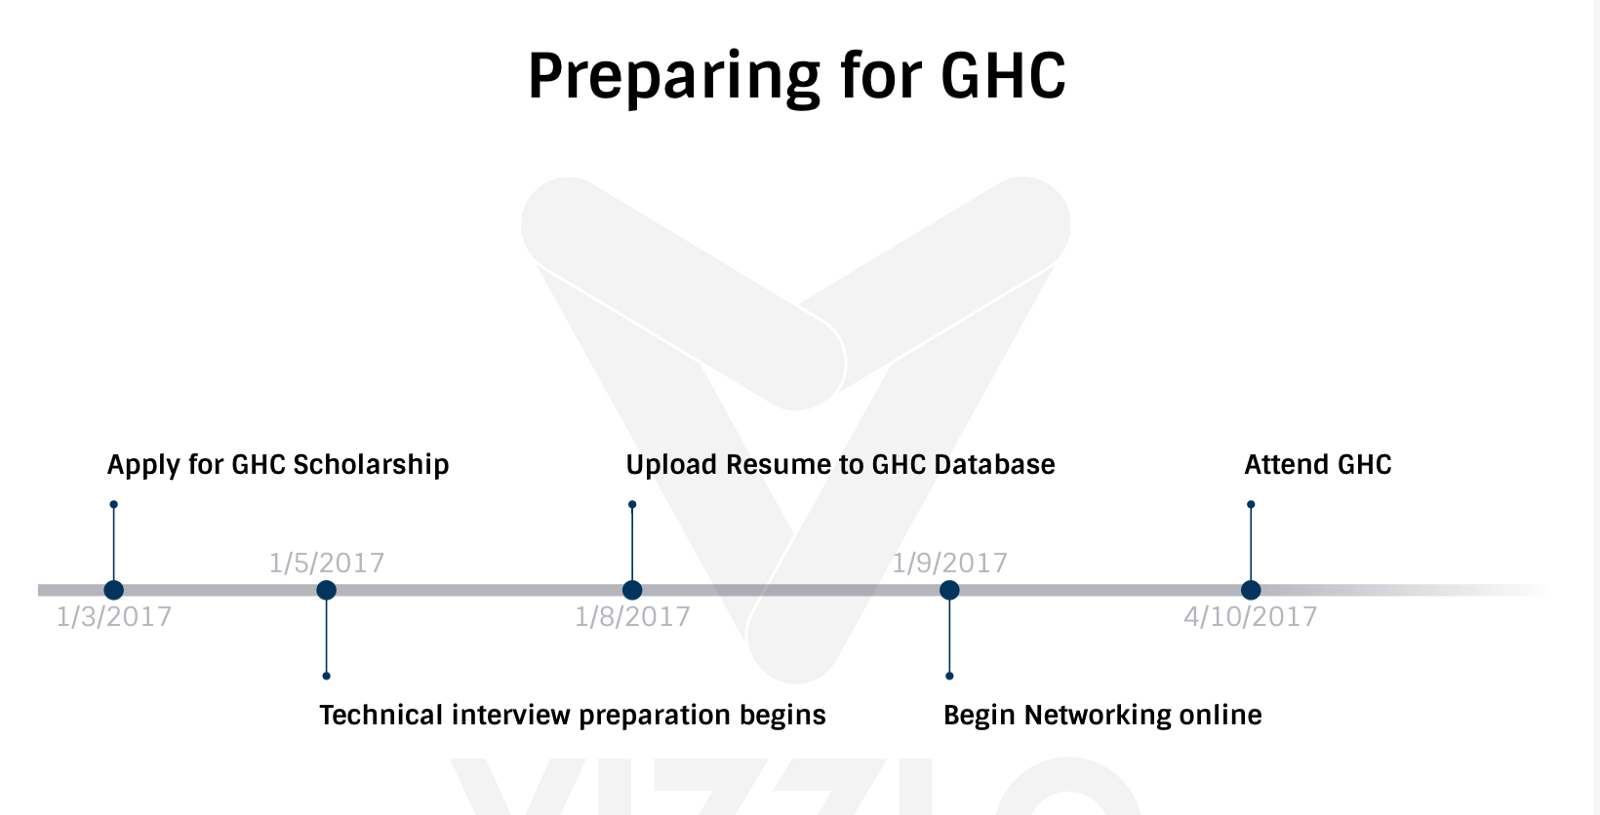 timeline to prepare for ghc - Grace Hopper Resume Database